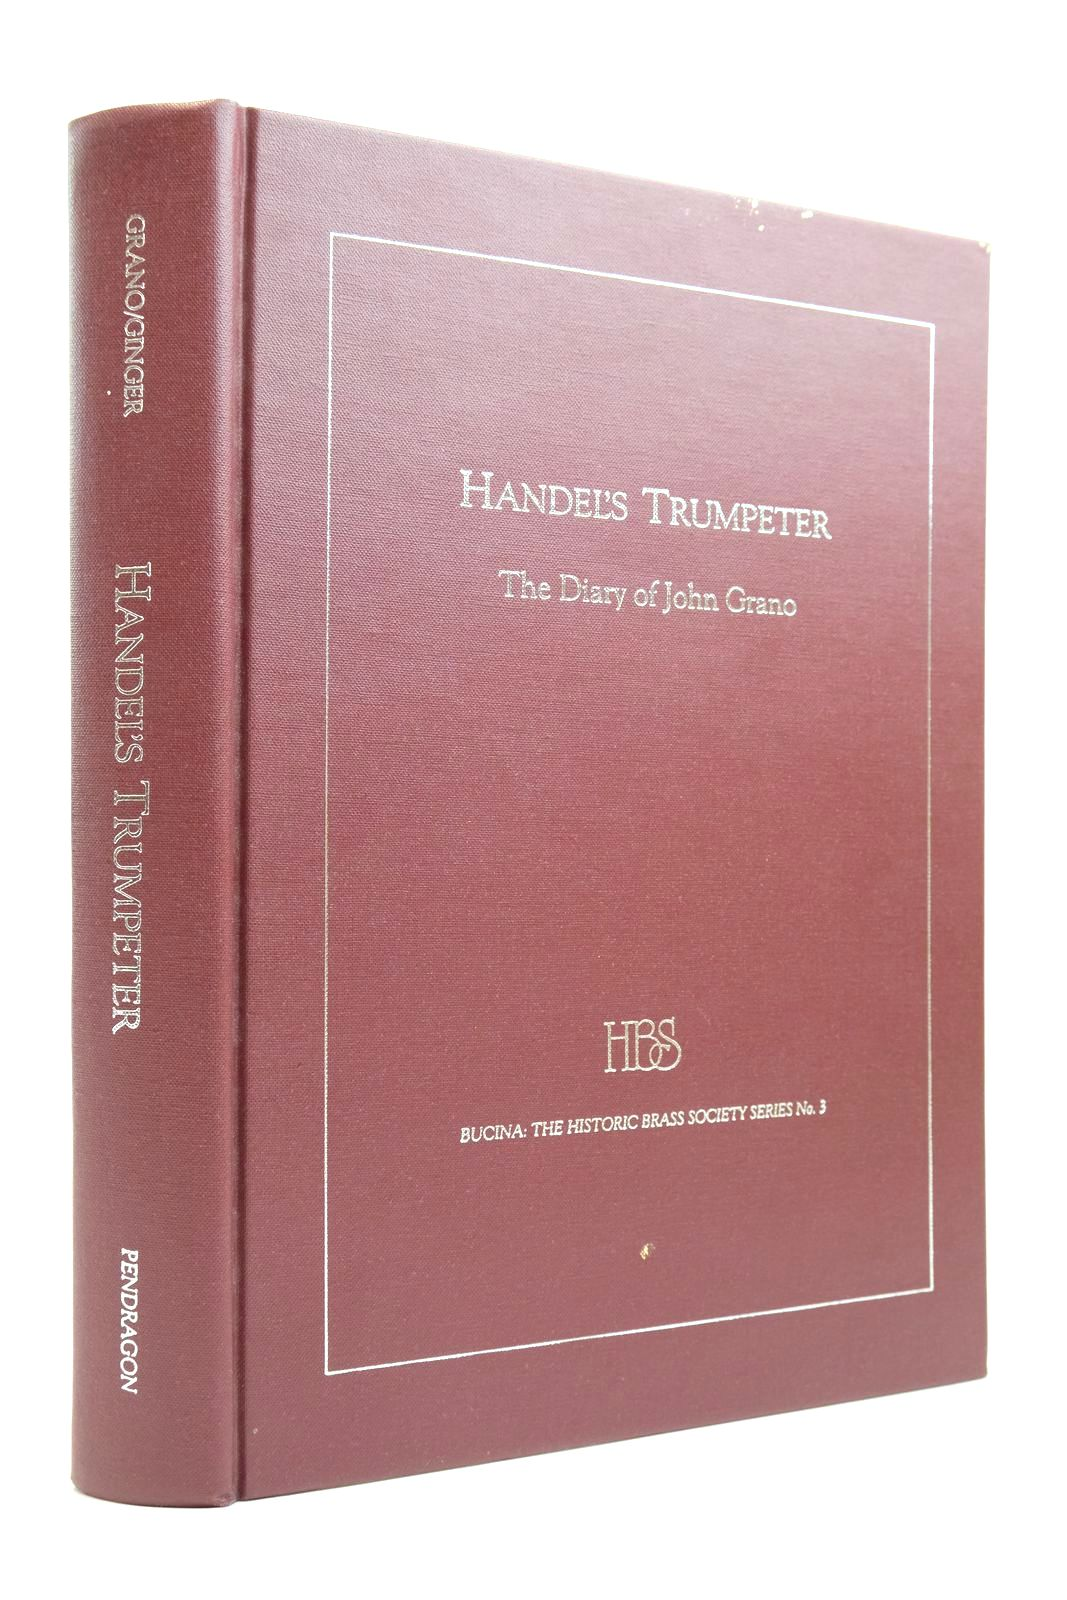 Photo of HANDEL'S TRUMPETER: THE DIARY OF JOHN GRANO written by Grano, John Ginger, John Steele-Perkins, Crispin published by Pendragon Press (STOCK CODE: 2134686)  for sale by Stella & Rose's Books